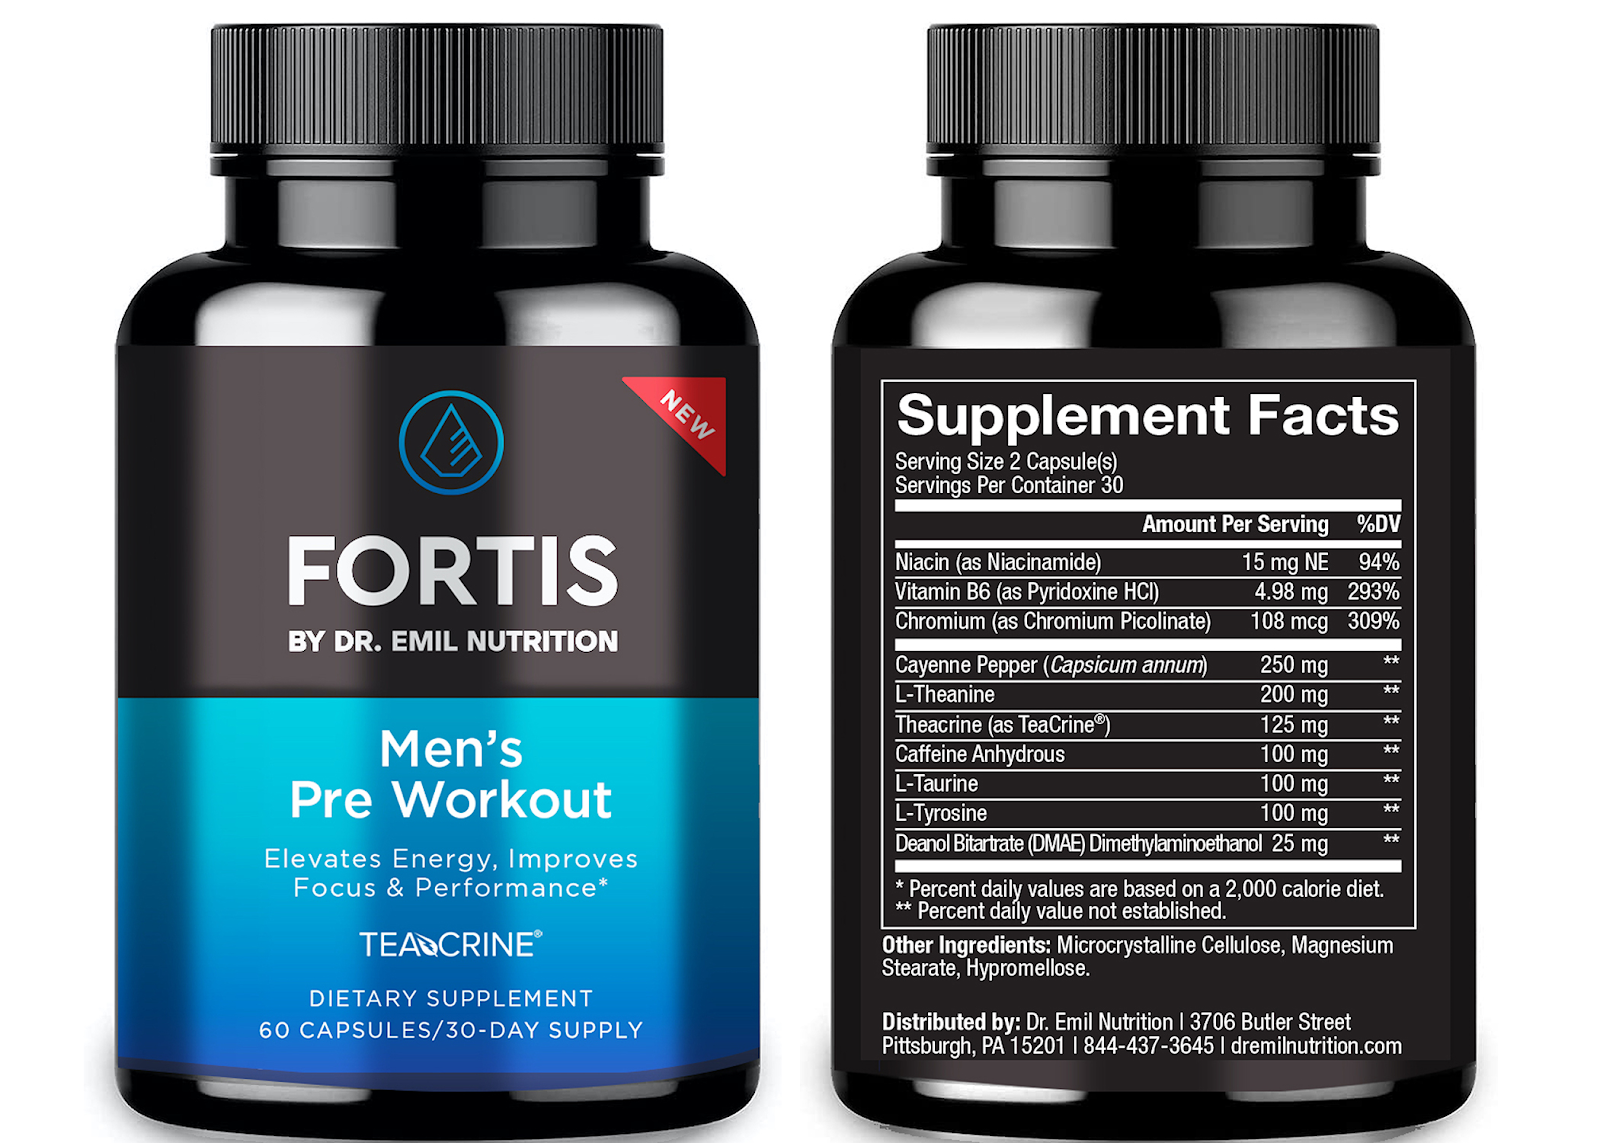 Dr. Emil Nutrition's Fortis Men's Pre-Workout Supplement